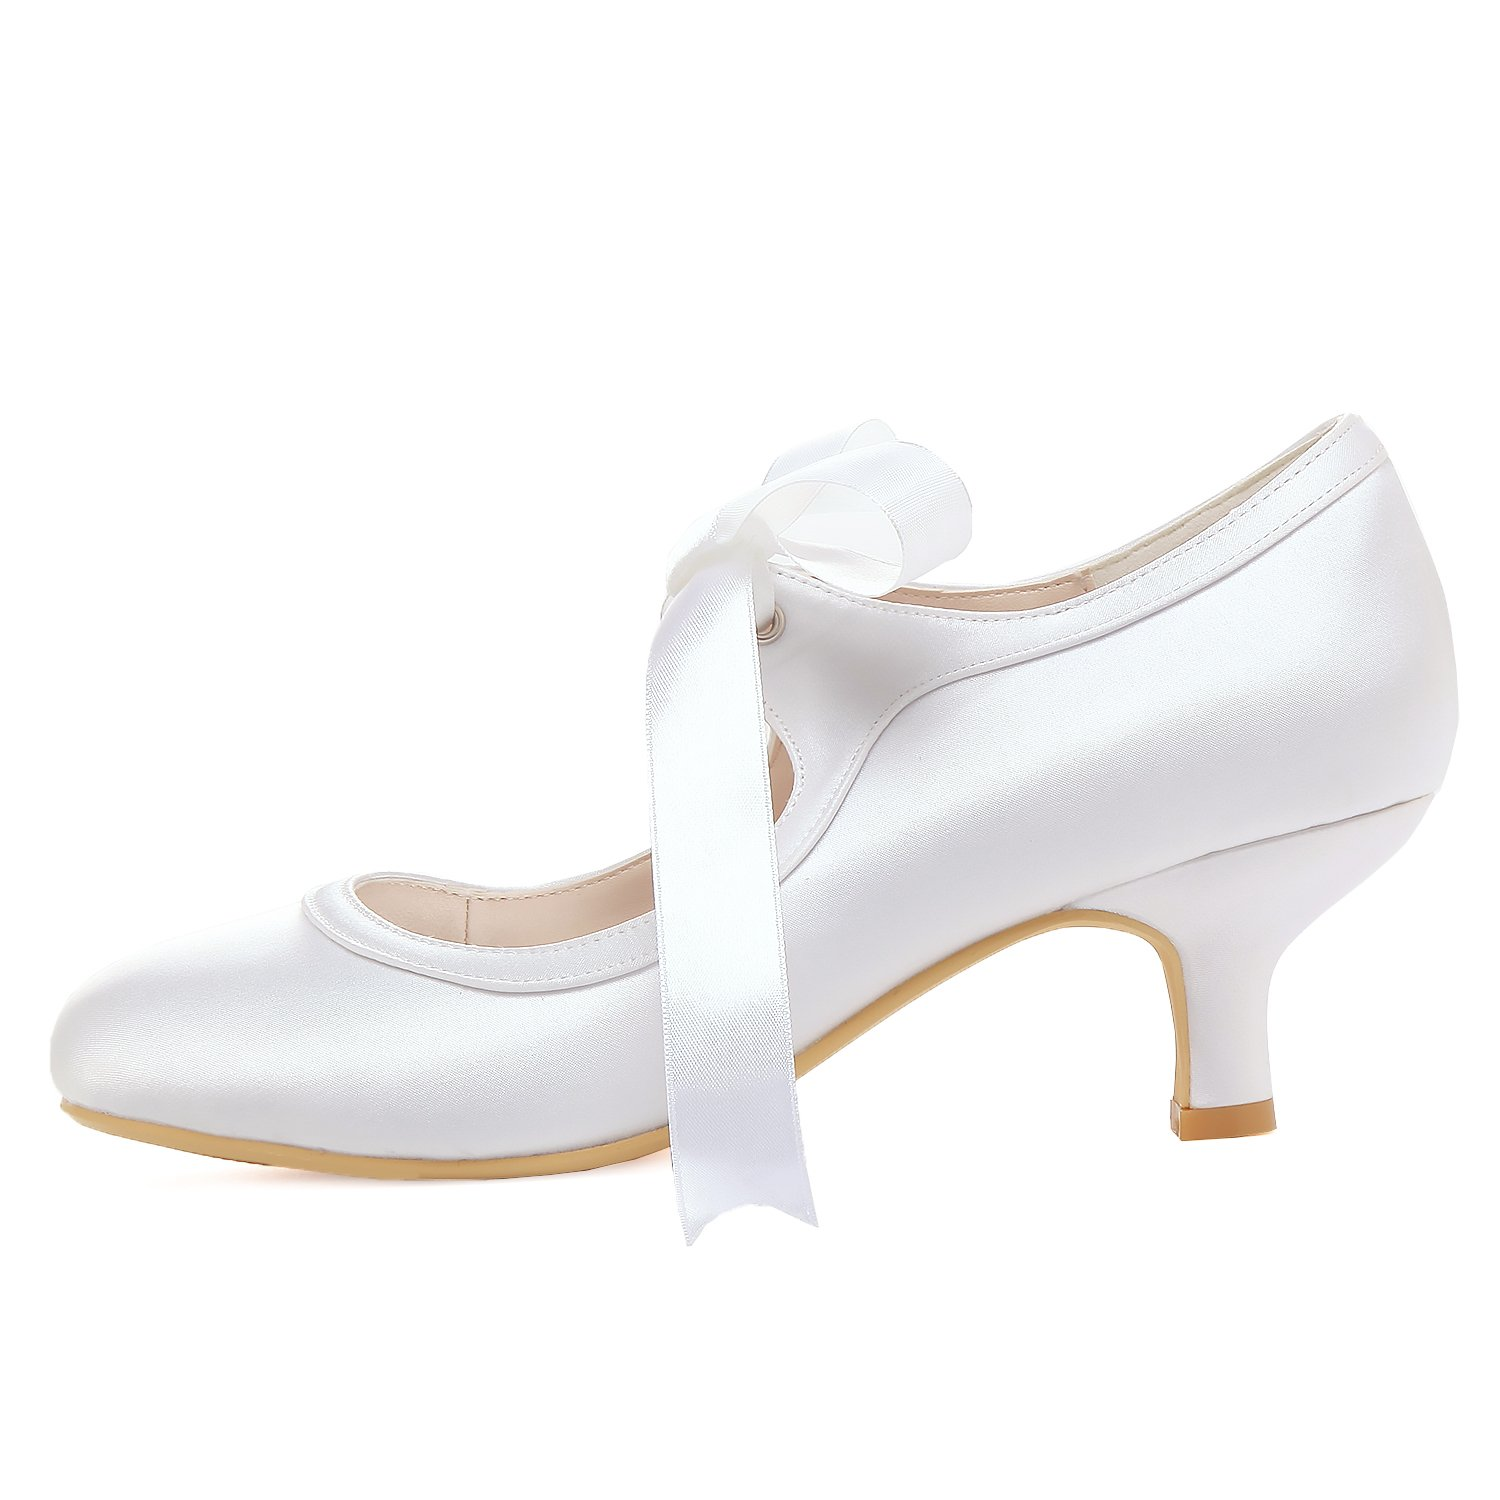 ElegantPark Women Mary Jane Pumps Mid Heel Closed Toe Ribbon Satin Bridal Wedding Shoes Ivory B078NMMVZ4 10 B(M) US|White